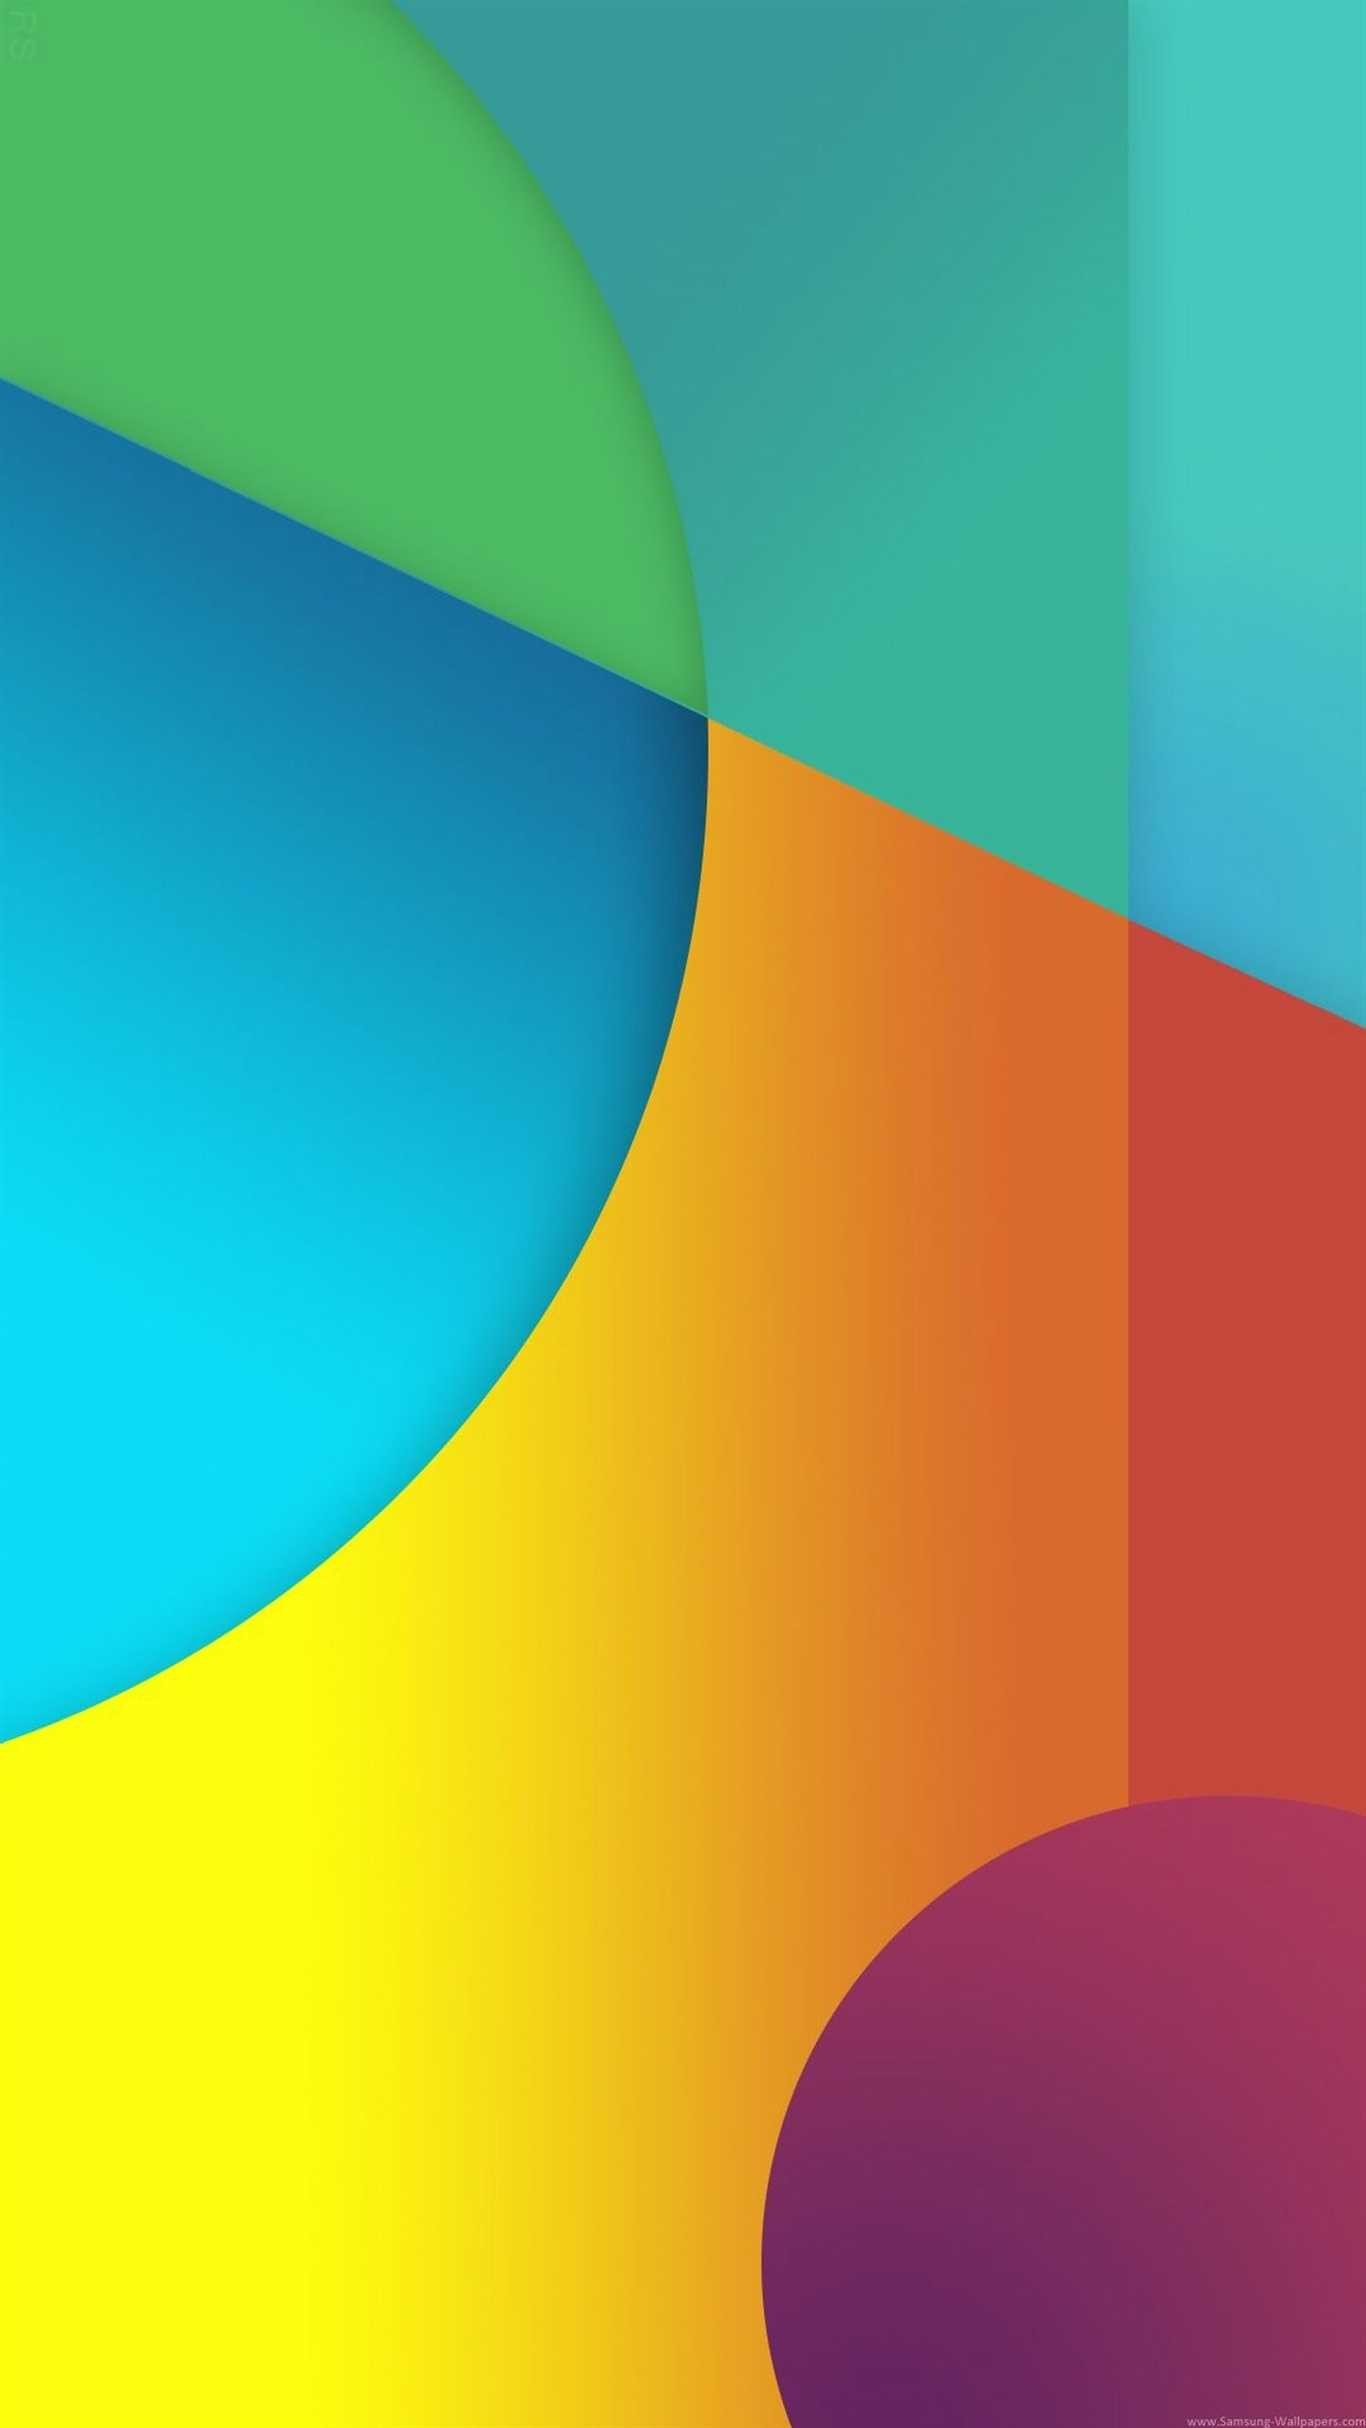 1366x2428 1440x2560 Wallpaper lg g4 four colors abstract 1440 2560 qhd. Download ·  Reso: 1440x2560, Colorful LG G4 Wallpaper ...